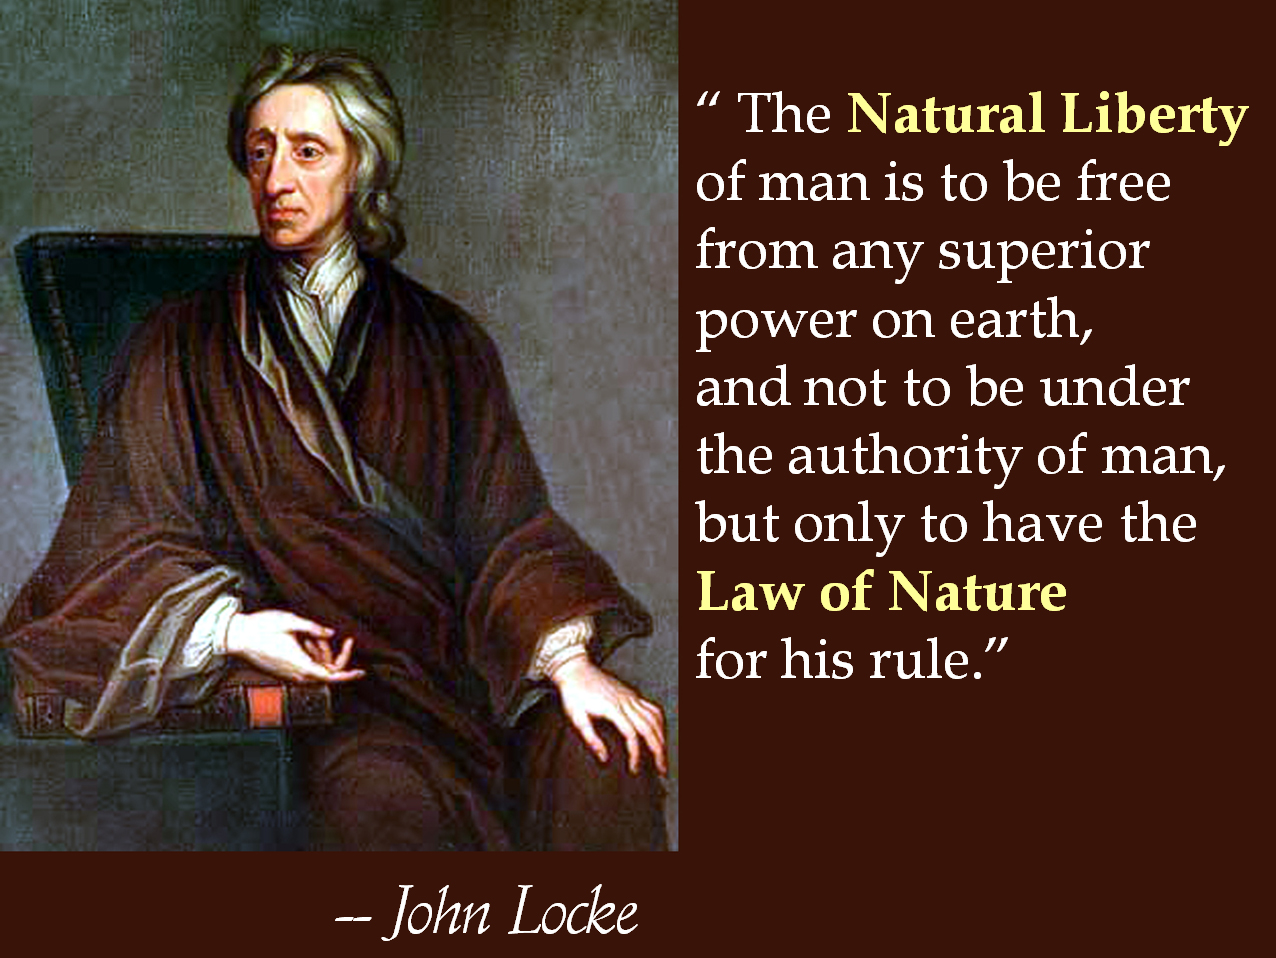 locke men Do women have more rights than men in what context what kind of rights are we speaking of rights possessed in theory or rights enshrined in law.